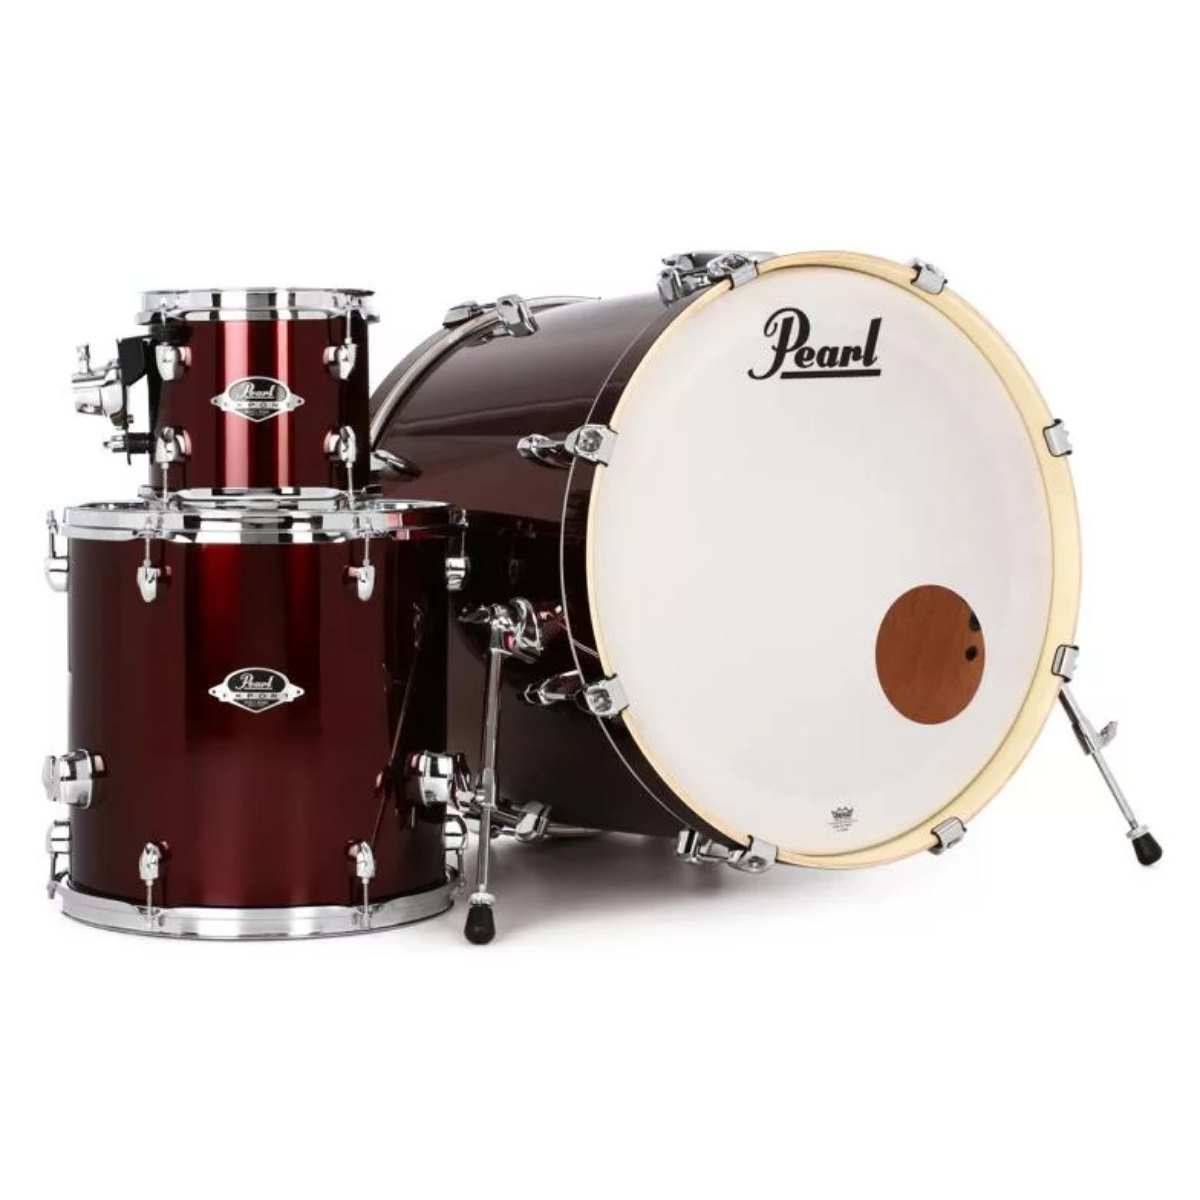 Pearl EXX22 760 shell pack